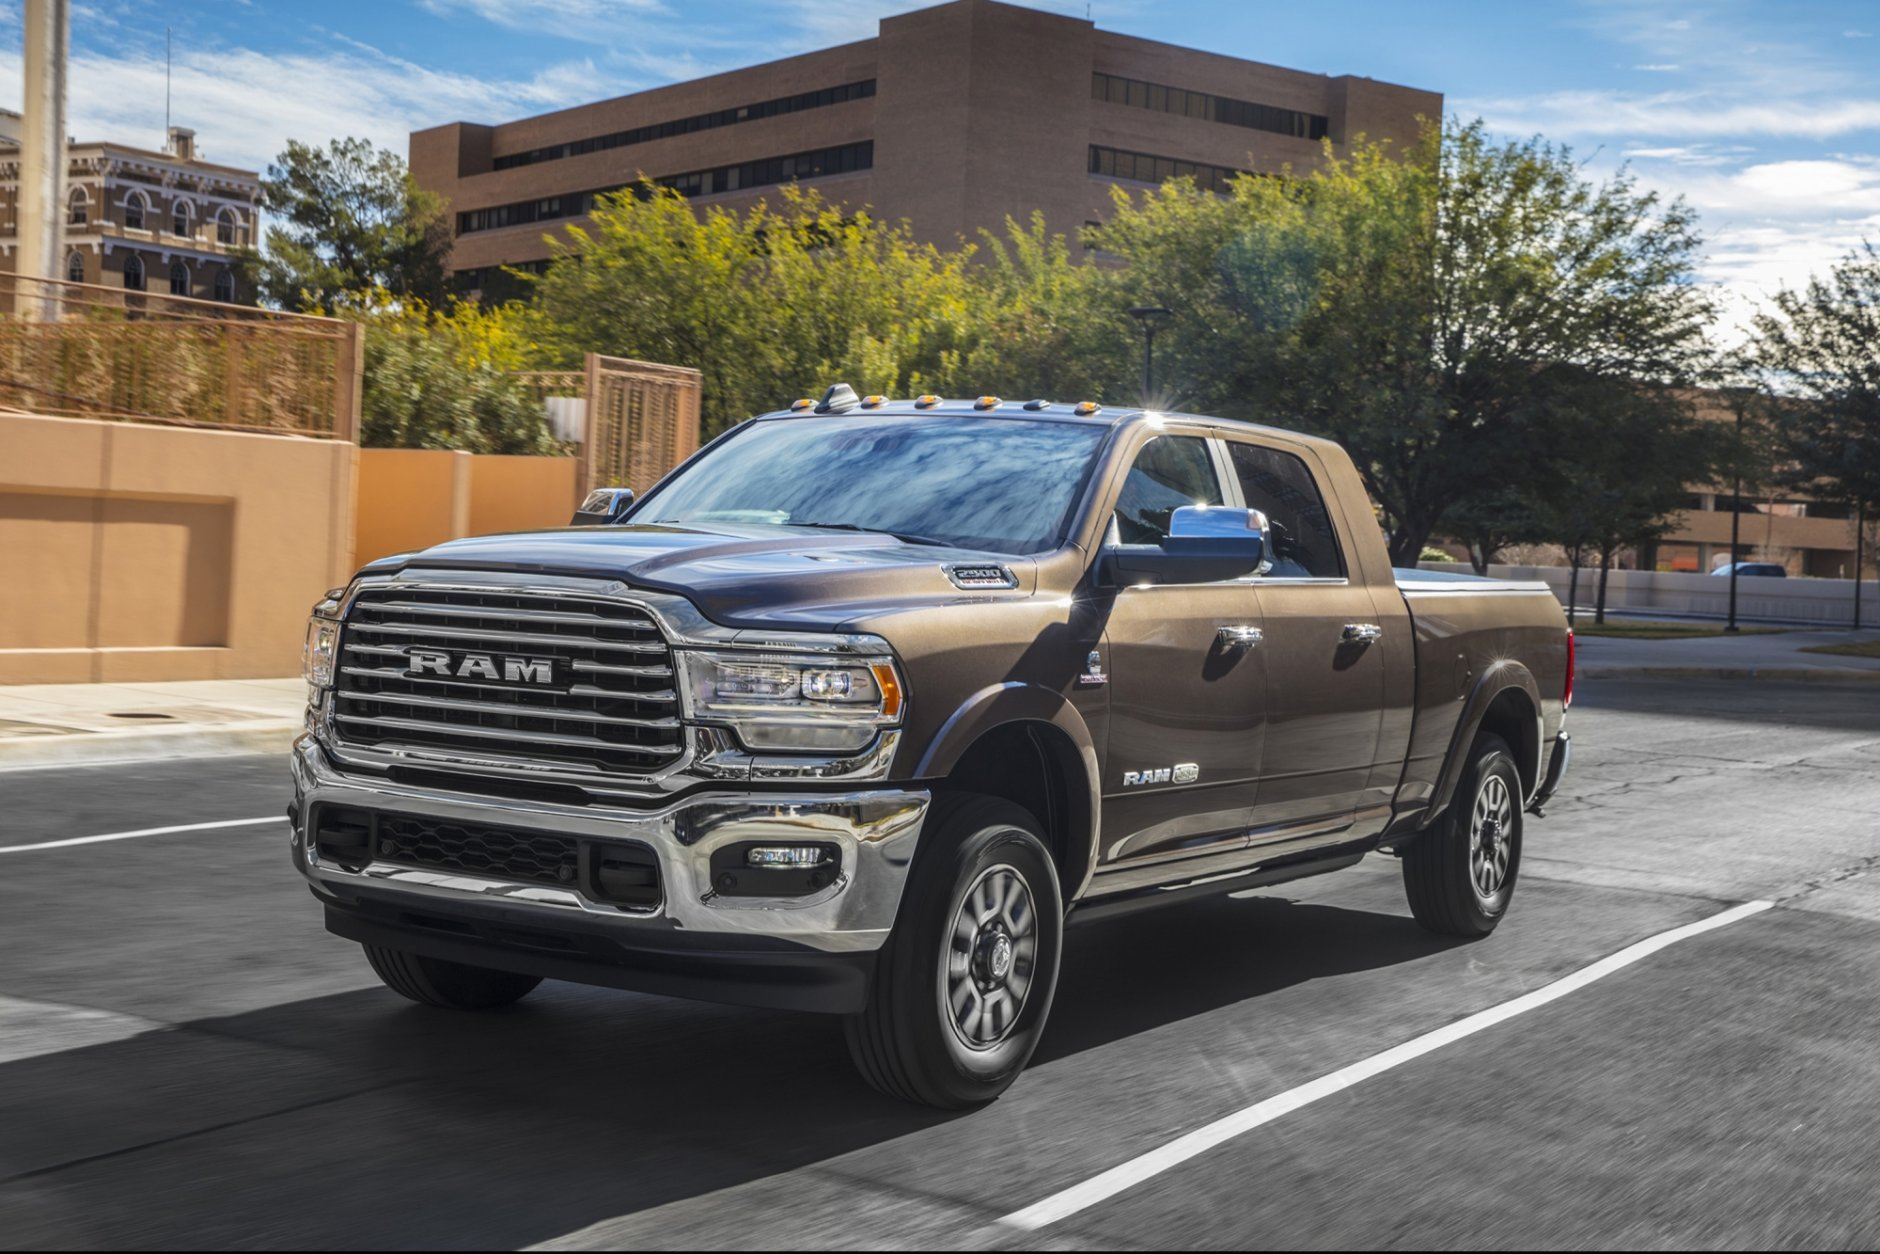 This undated photo provided by Ram shows the redesigned 2019 Ram 2500. Ram redesigned its heavy-duty lineup for 2019 with new styling, upgraded interiors, and a wide range of engine and transmission choices. As with its light-duty 1500 sibling, the Ram 2500's ace card is a unique rear coil-spring suspension that creates a more comfortable ride than its competitors. (AJ Mueller/FCA US via AP)